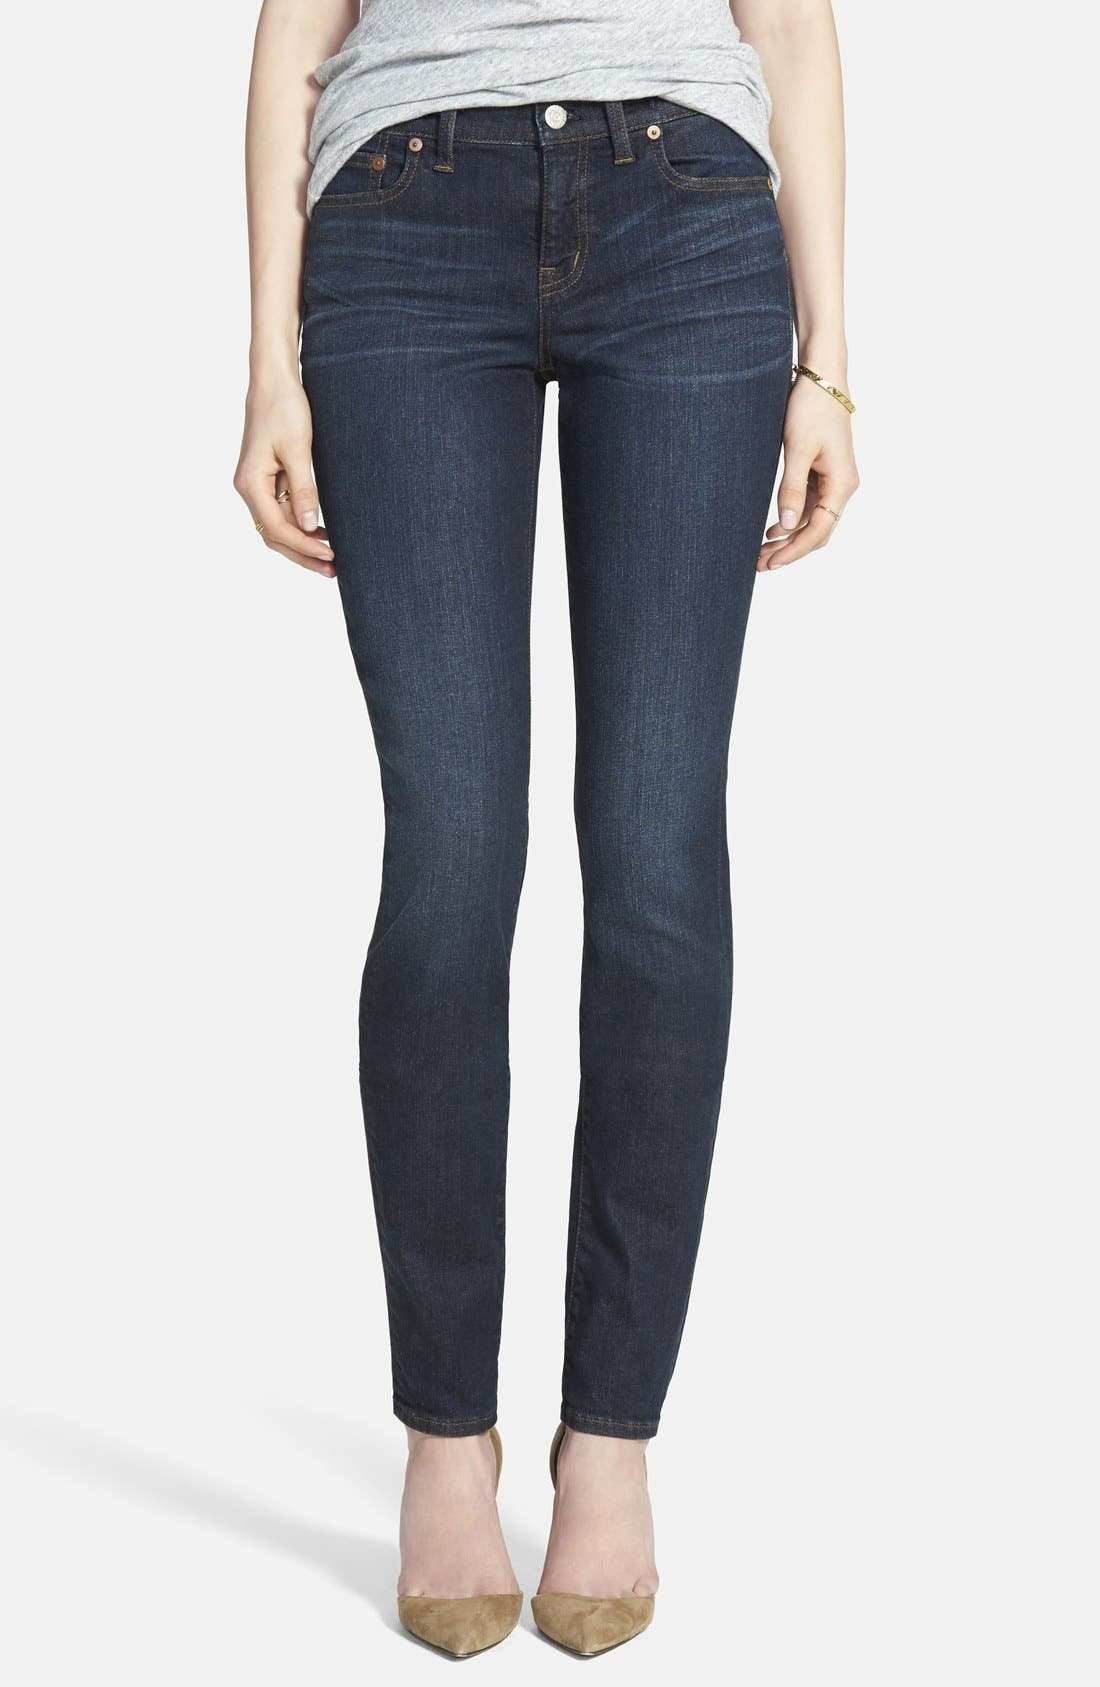 Alternate Image 1 Selected - Madewell 'Alley' Straight Leg Jeans (Waterfall)